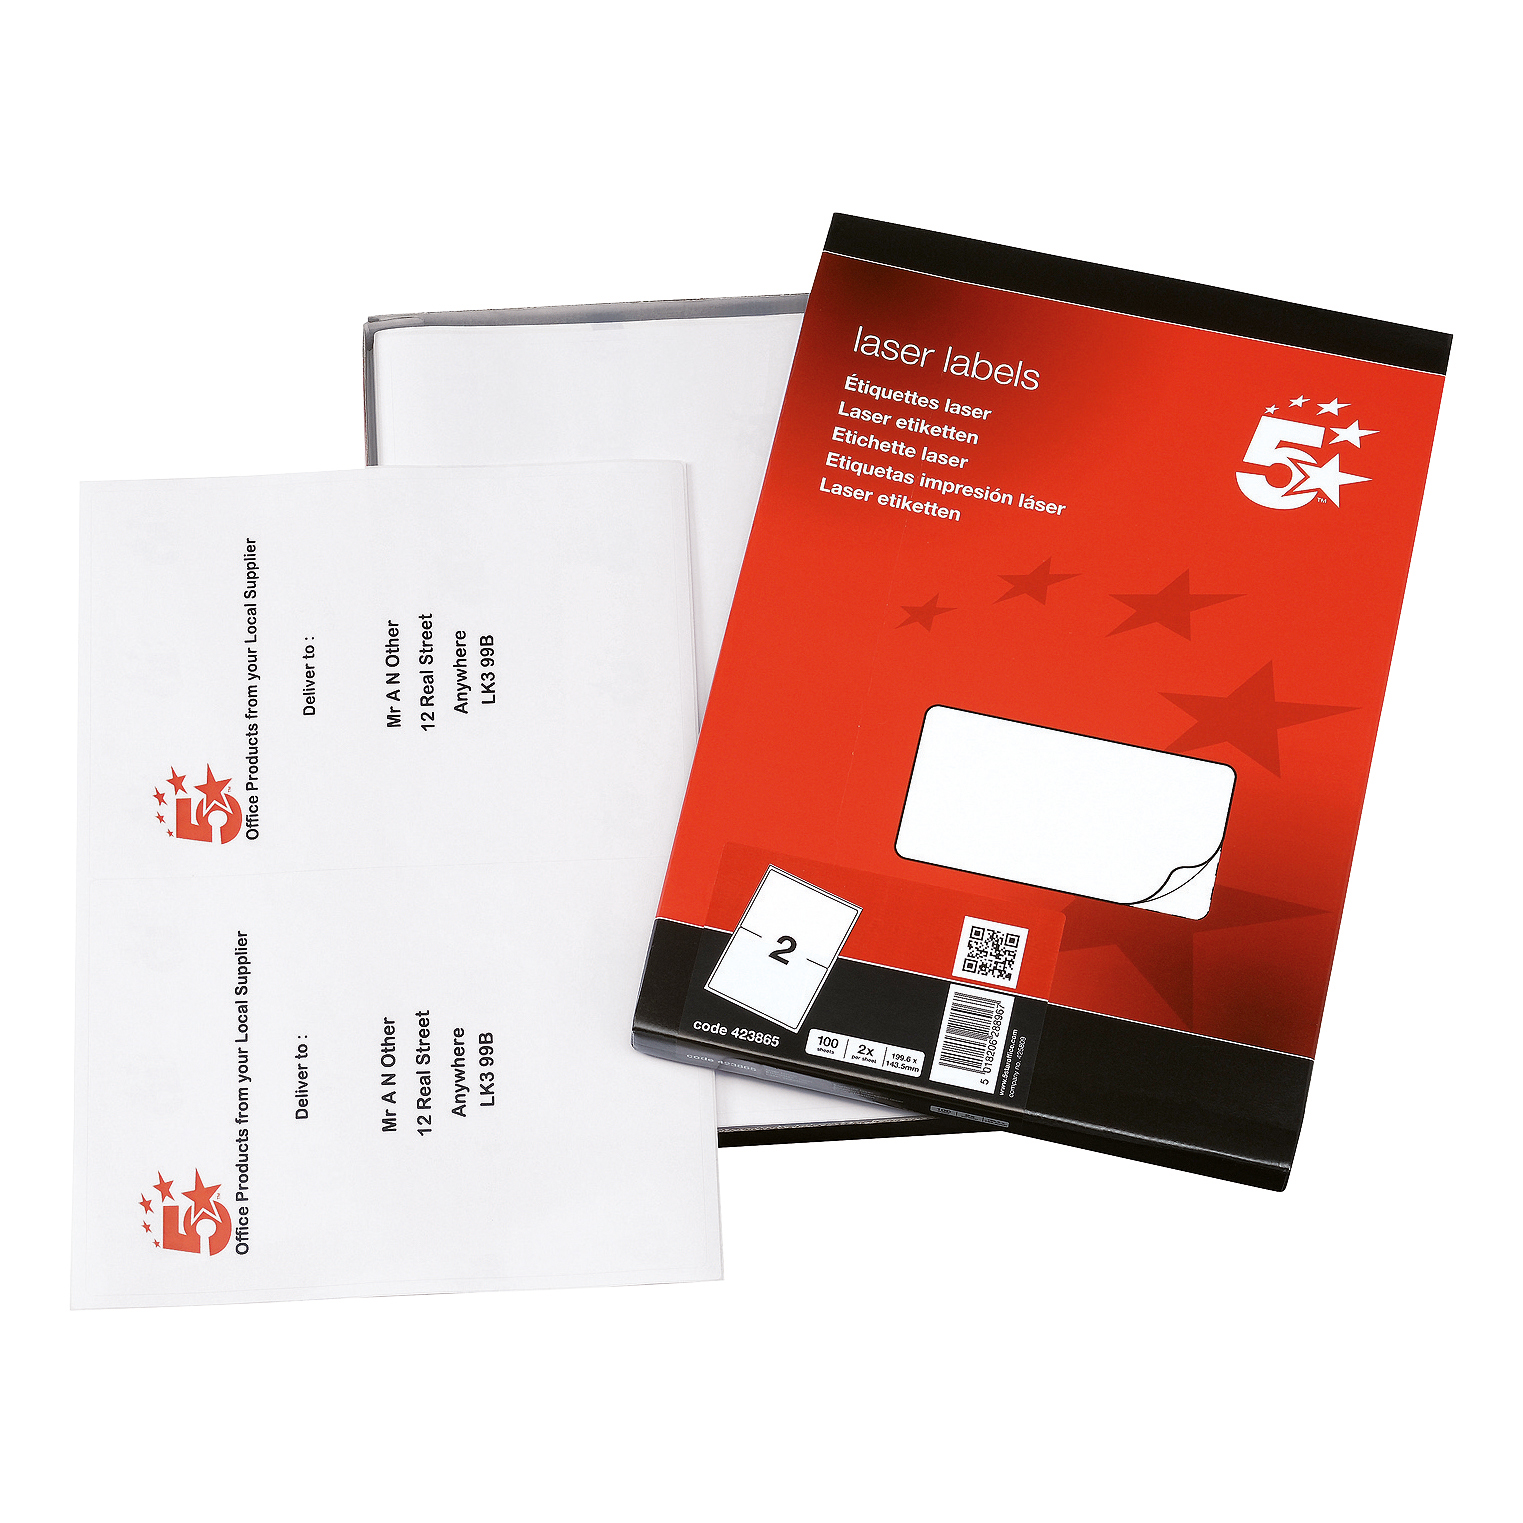 5 Star Office Multipurpose Labels Laser Copier and Inkjet 2 per Sheet 199.6x143.5mm White 200 Labels